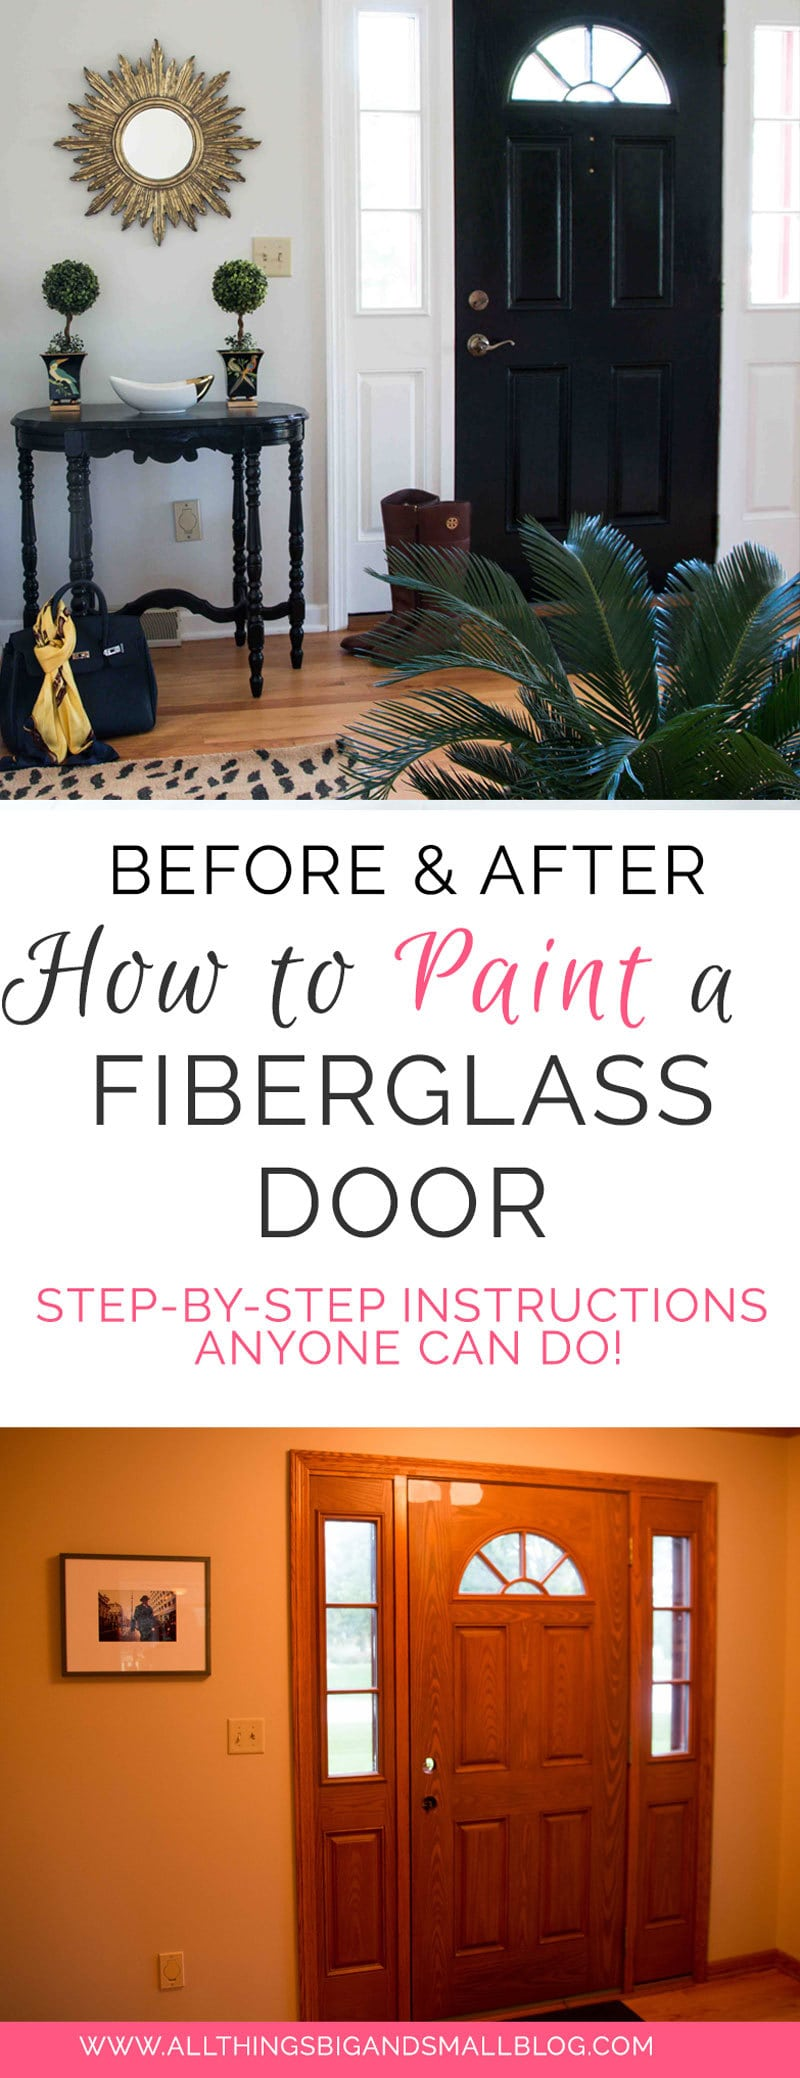 how to paint fiberglass door a step by step tutorial on how to paint. Black Bedroom Furniture Sets. Home Design Ideas